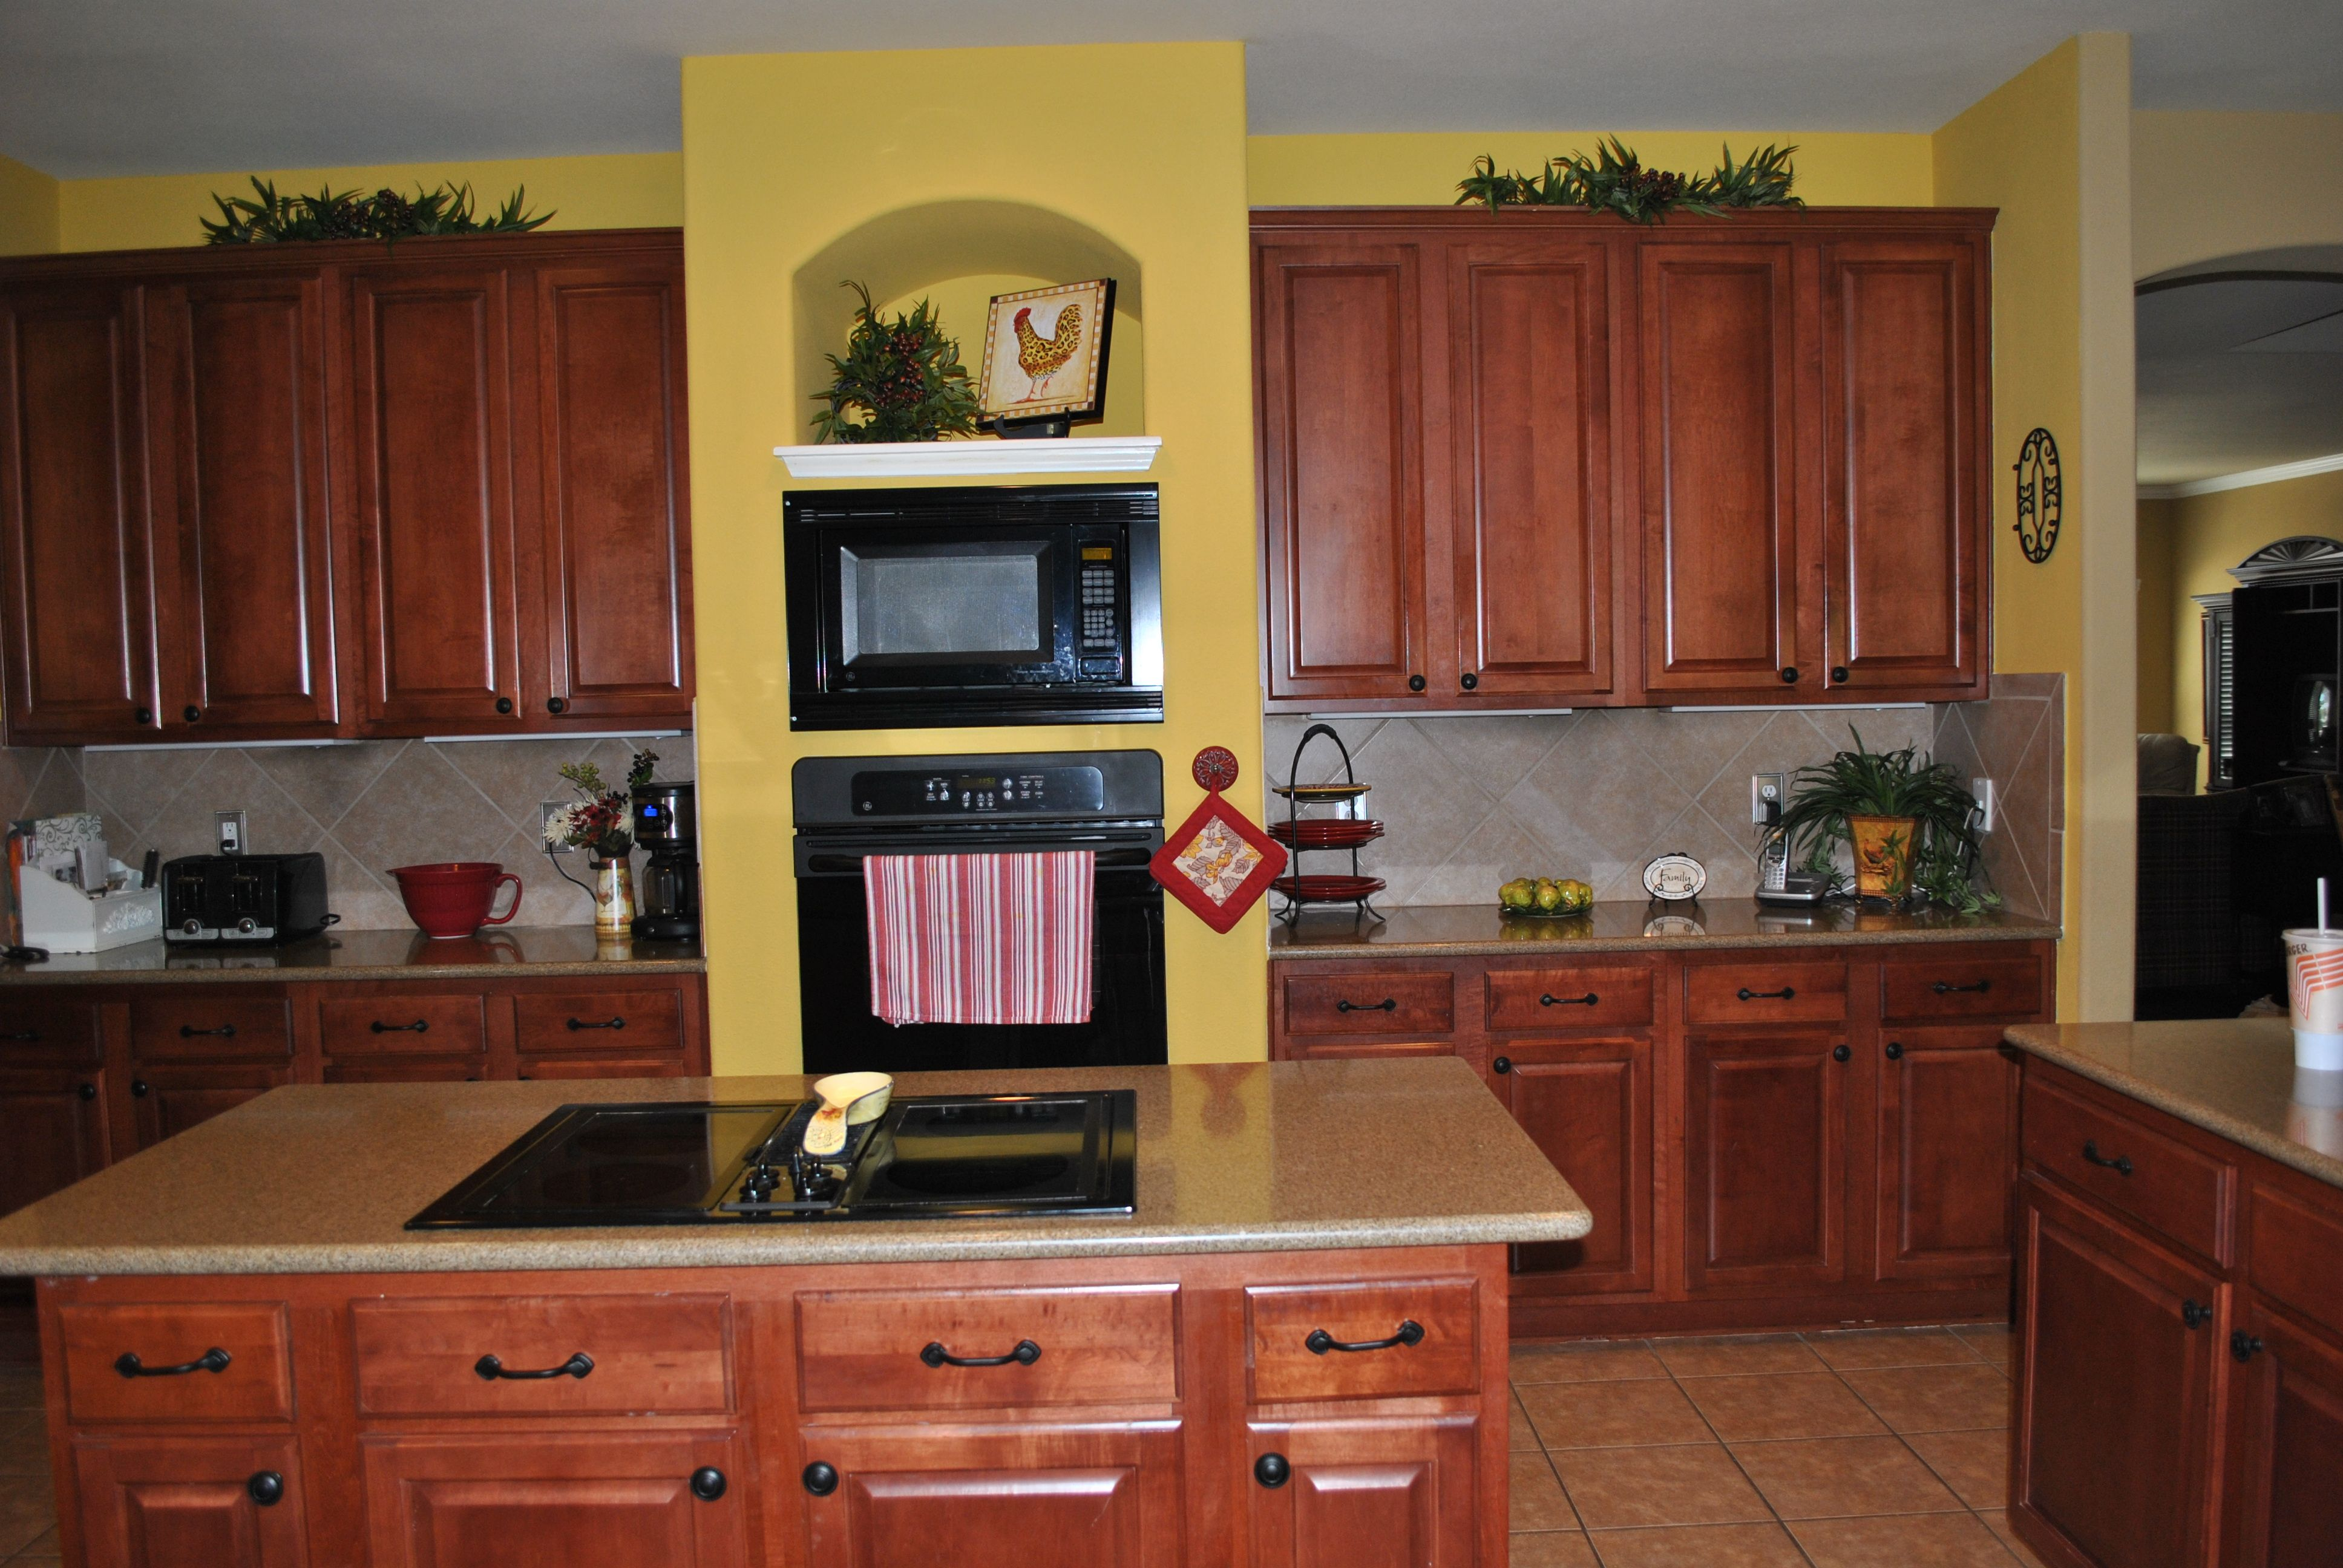 Yellow Kitchen Walls With Dark Cabinets I Don't Really Like The